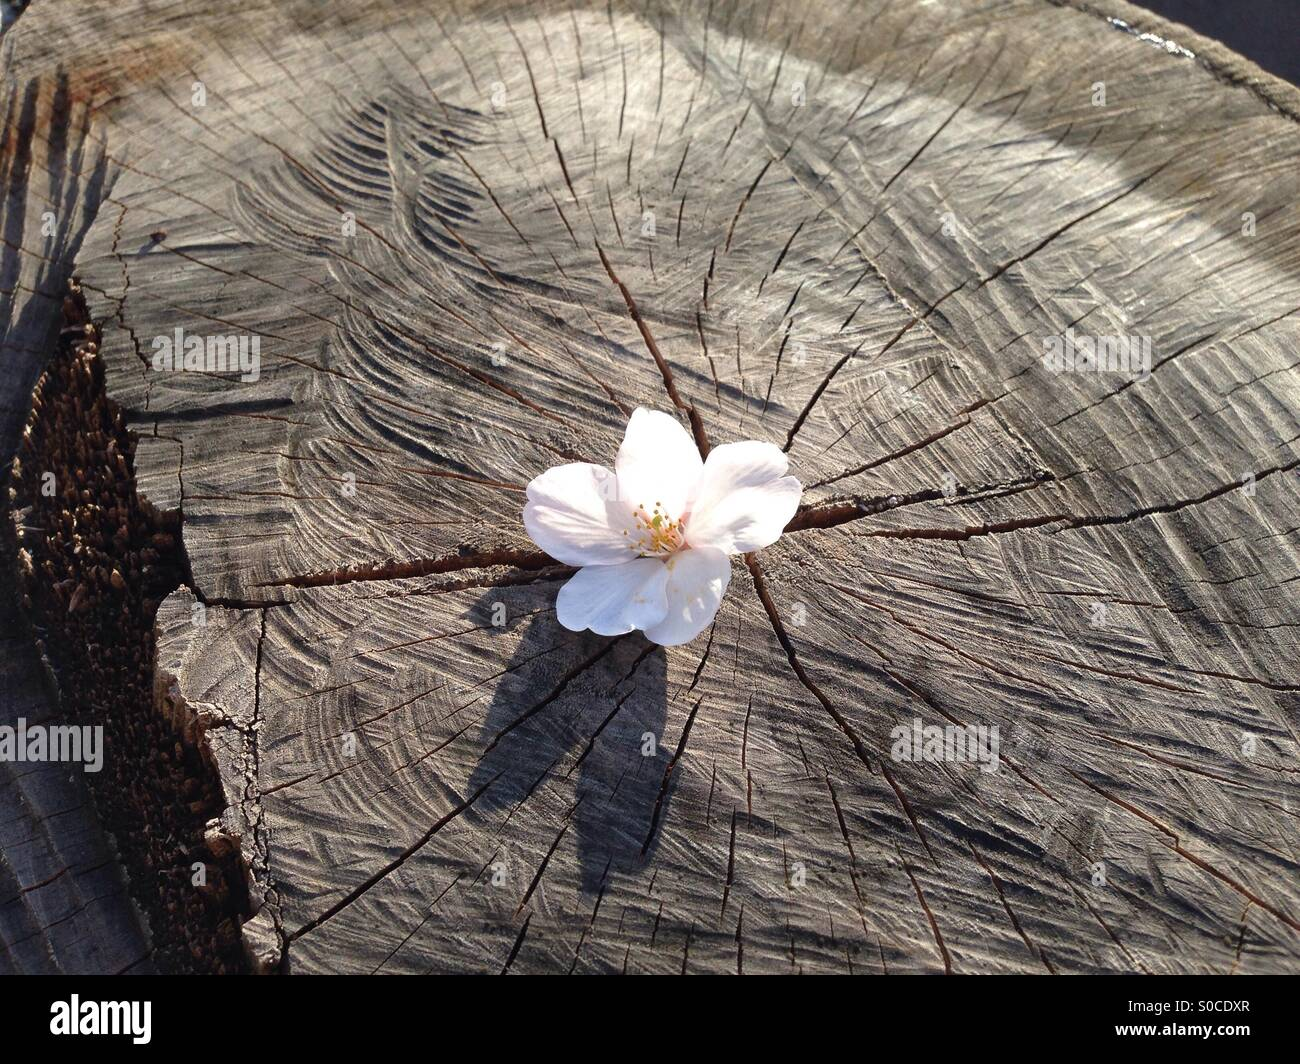 Cherry blossom fell on a cherry tree stump. - Stock Image